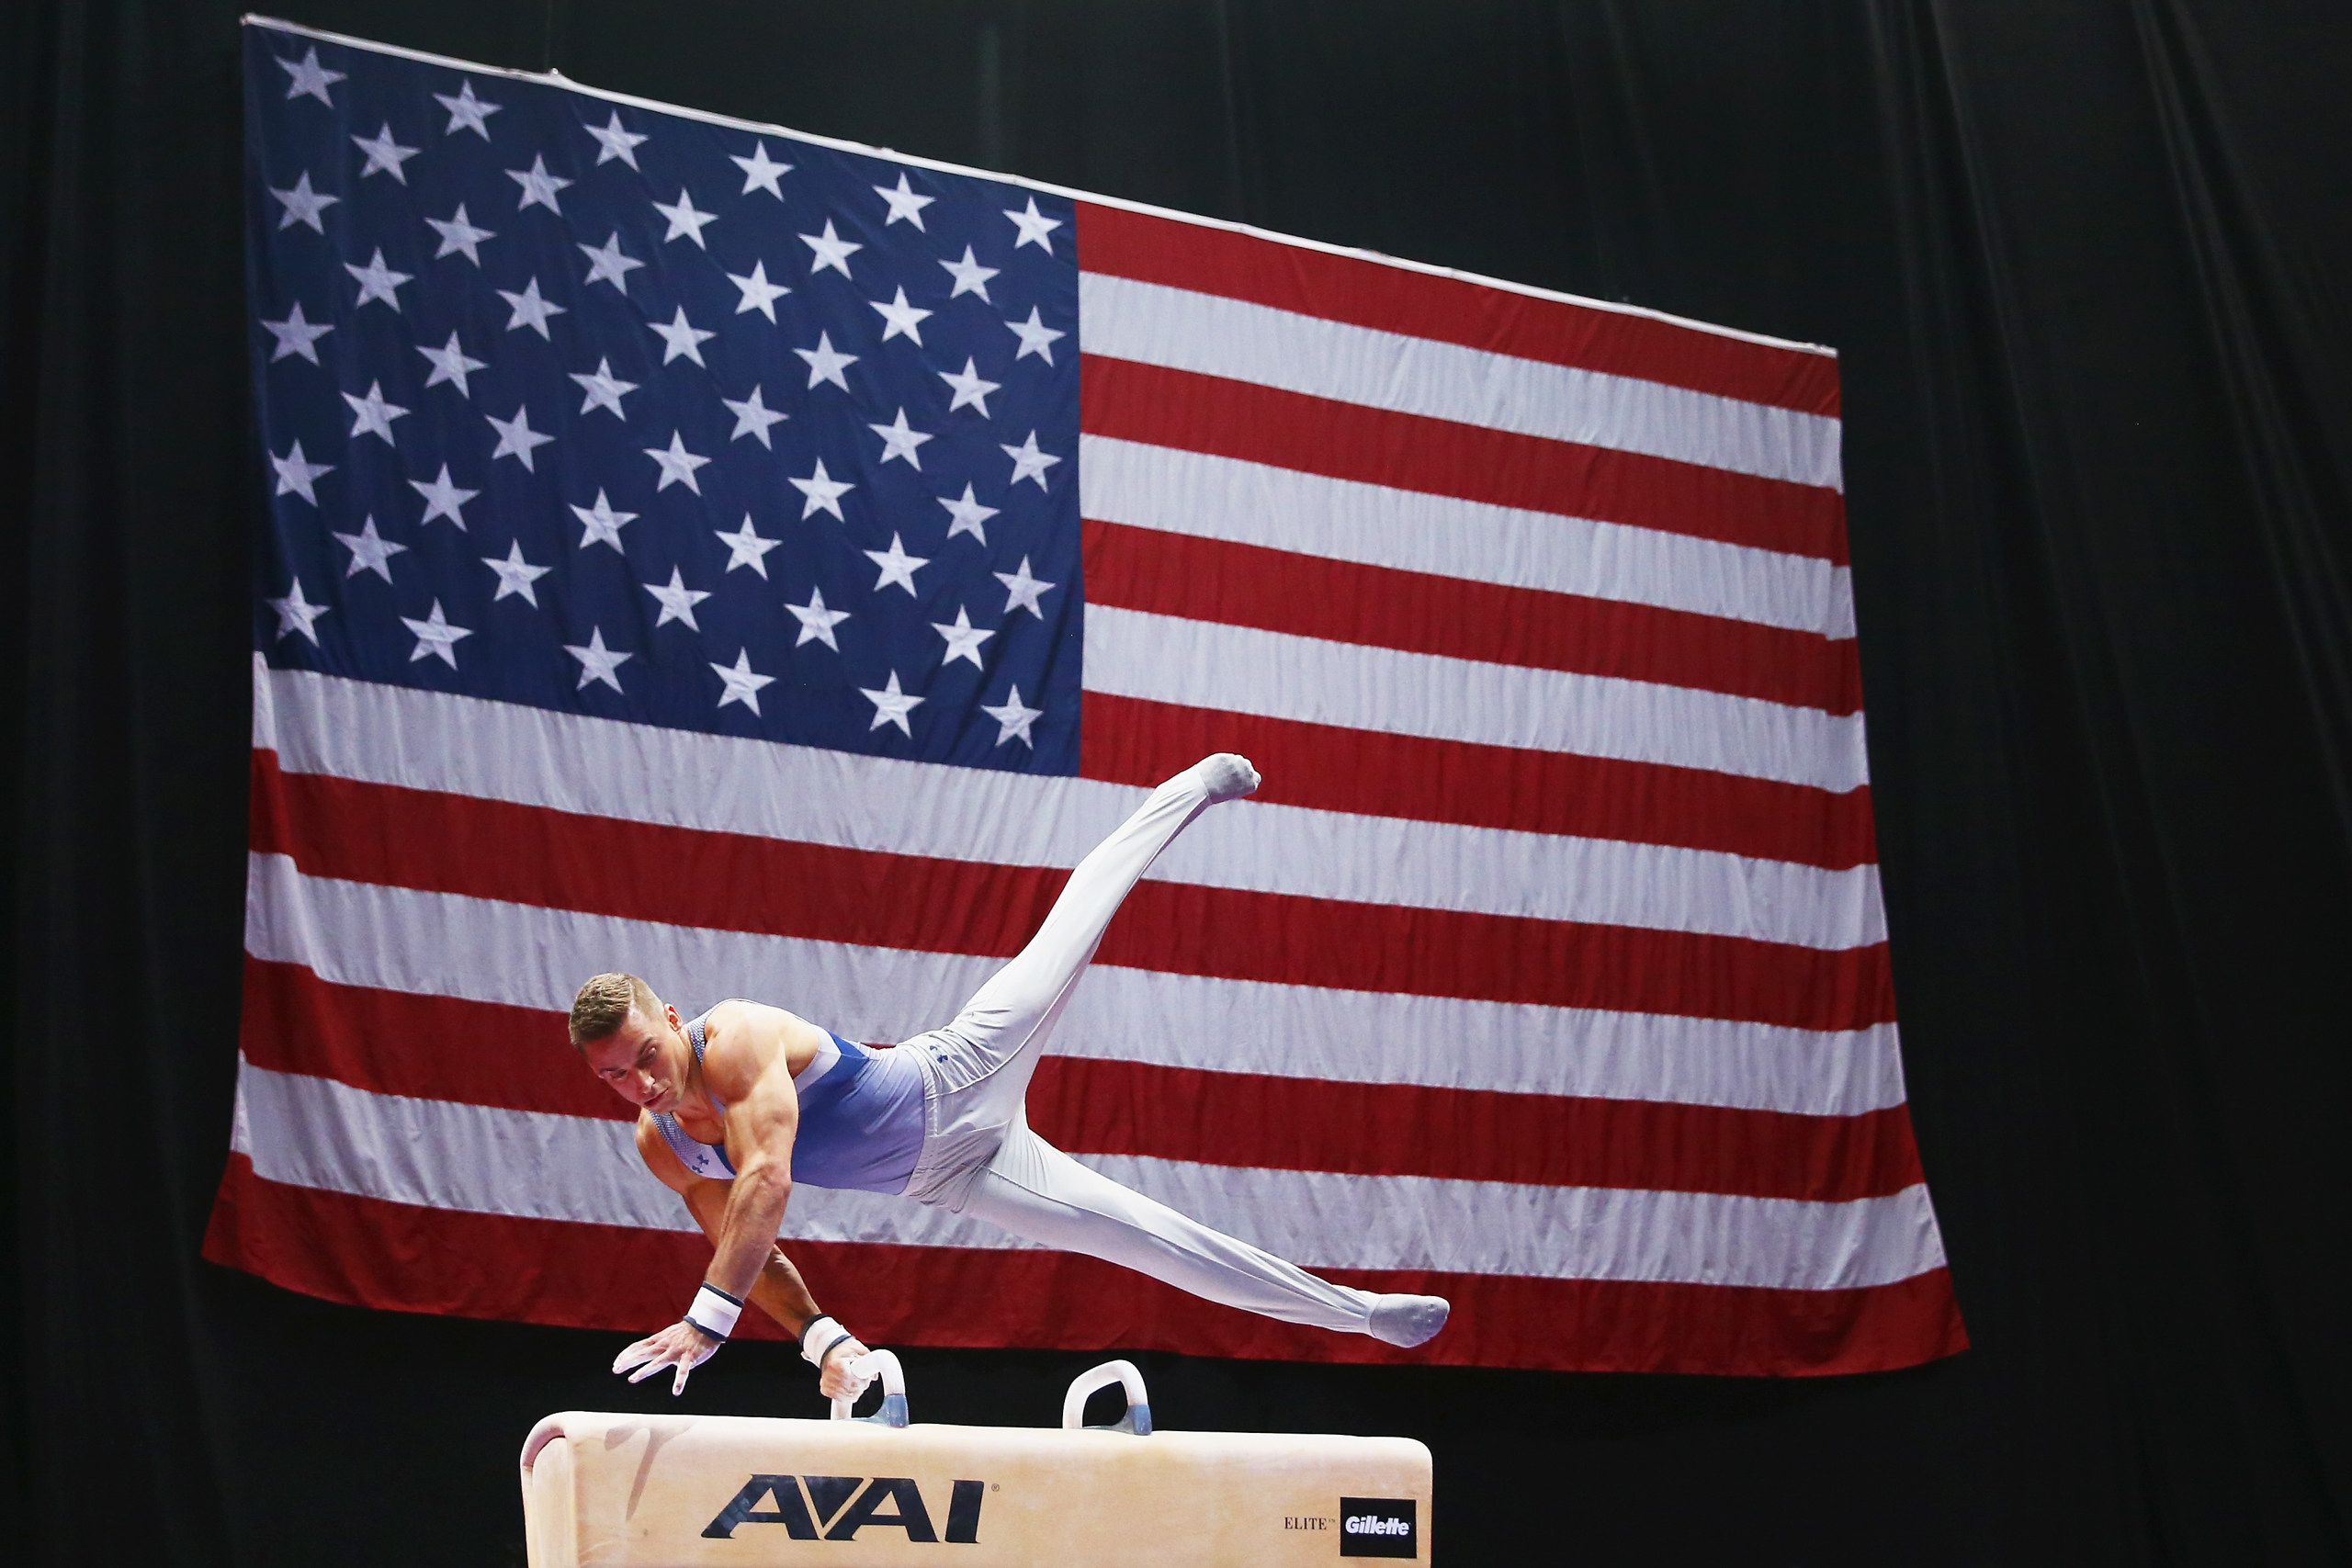 <strong>Sam Mikulak, Gymnastics, USA</strong>Newly recovered from an ankle injury that kept him out most of the season, he's the U.S.'s best hope in the men's all-around but faces stiff competition from China and Japan.